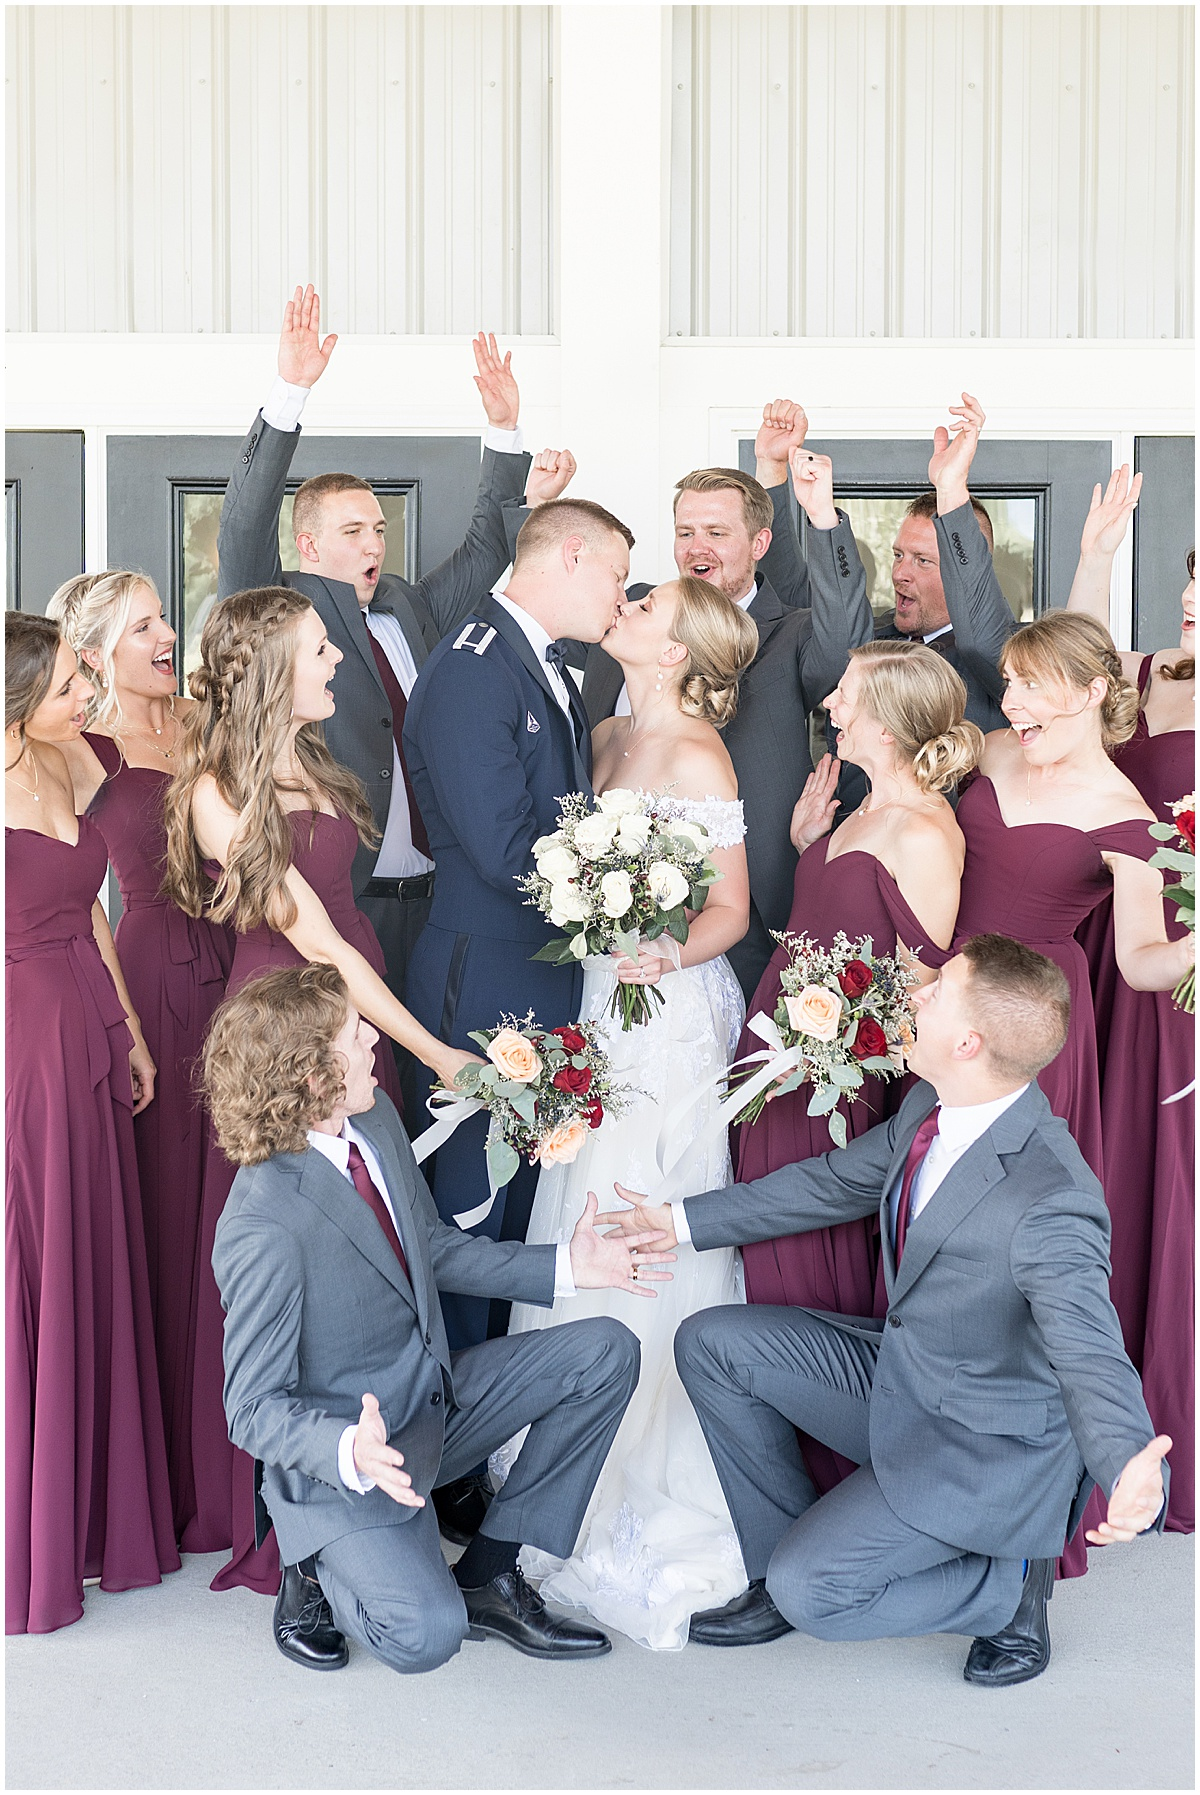 Bridal party photos at wedding reception at New Journey Farms in Lafayette, Indiana